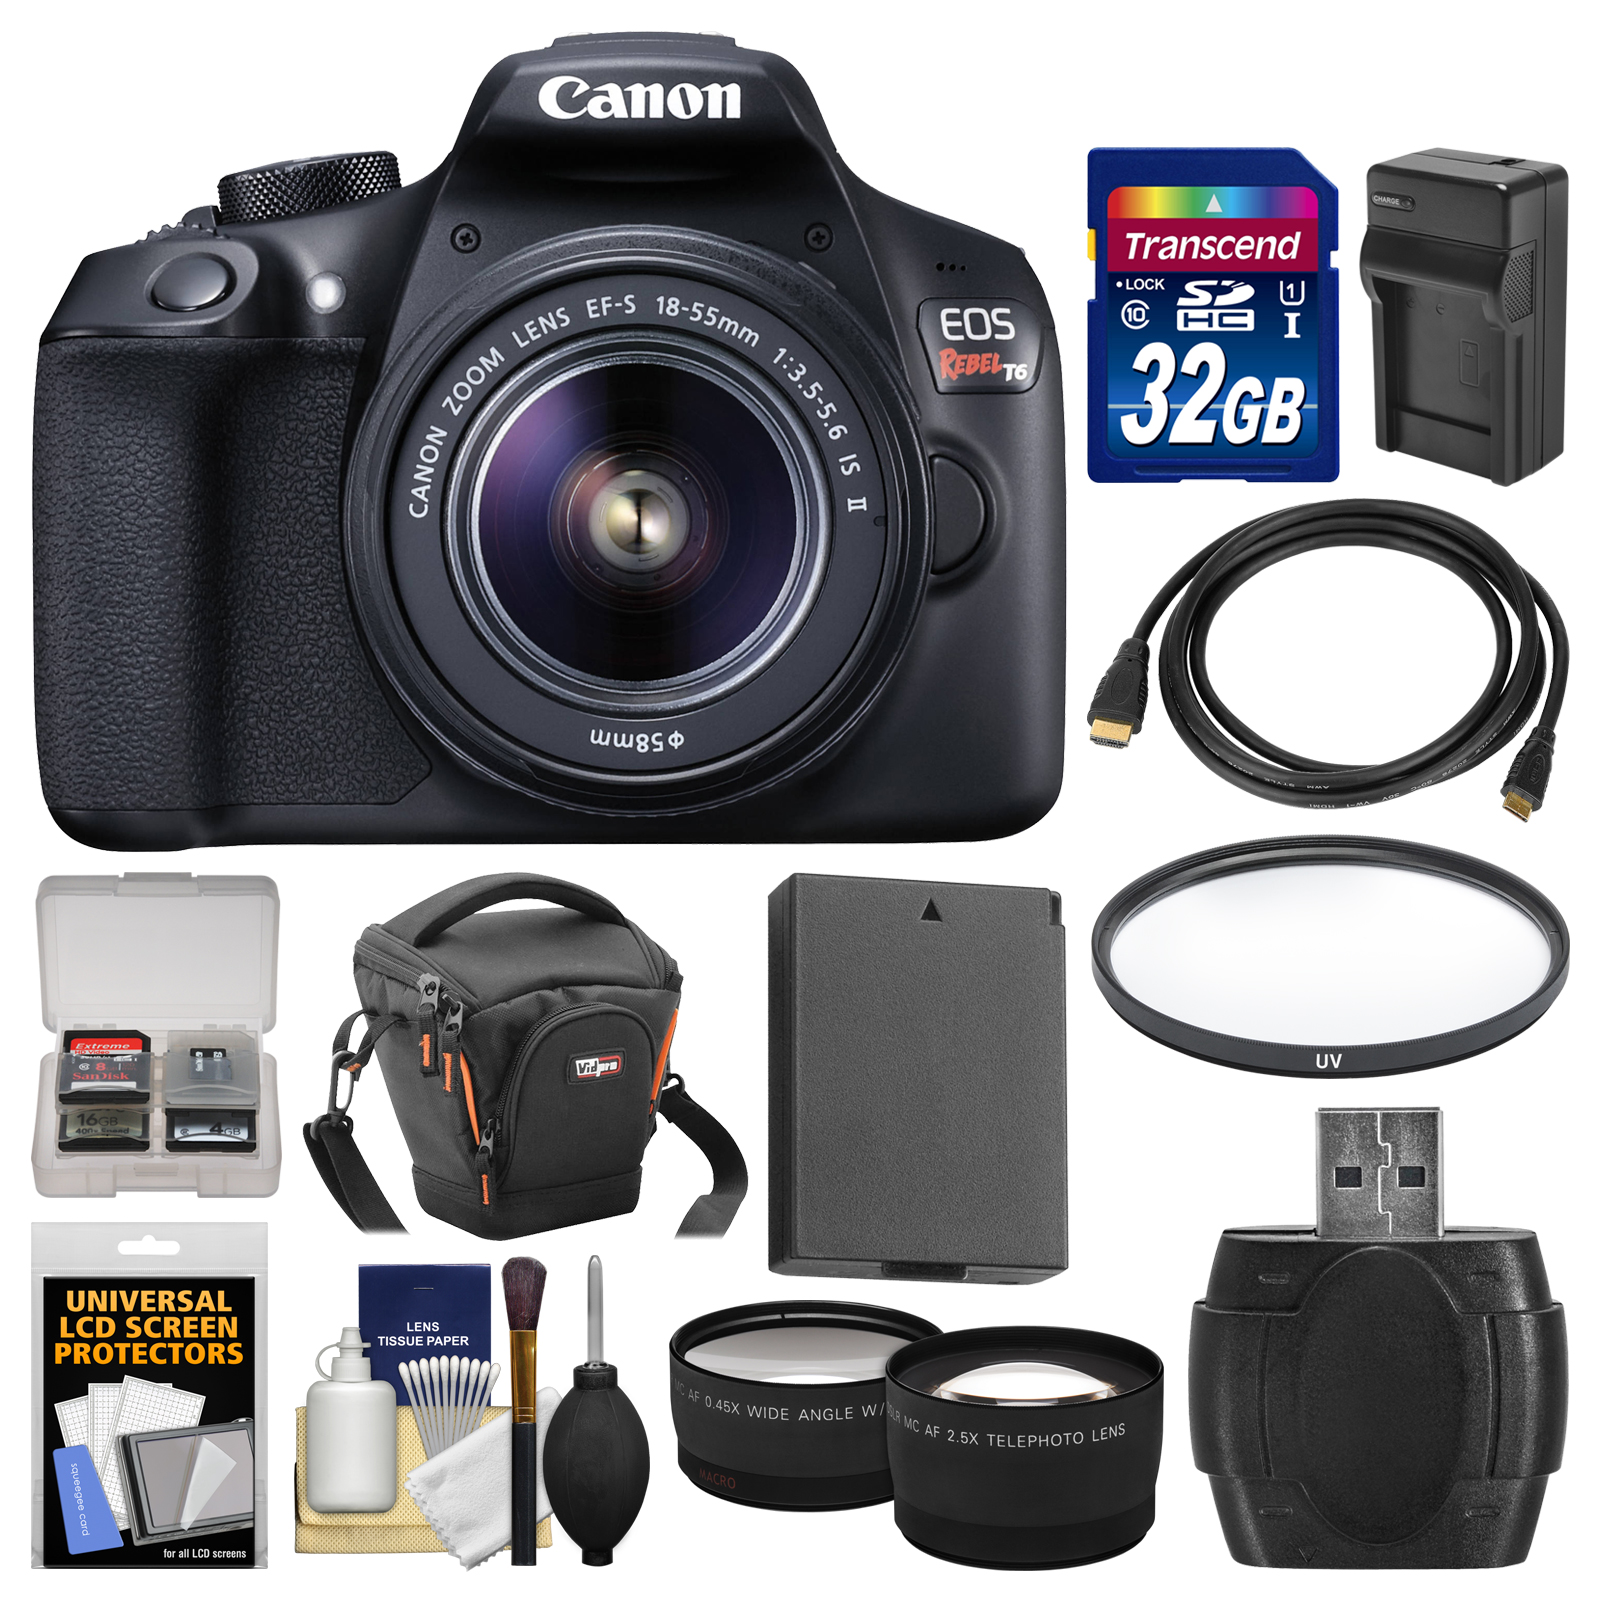 Canon EOS Rebel T6 Wi-Fi Digital SLR Camera & EF-S 18-55mm IS II Lens with 32GB Card + Case + Battery & Charger + Filter + Tele/Wide Lens Kit